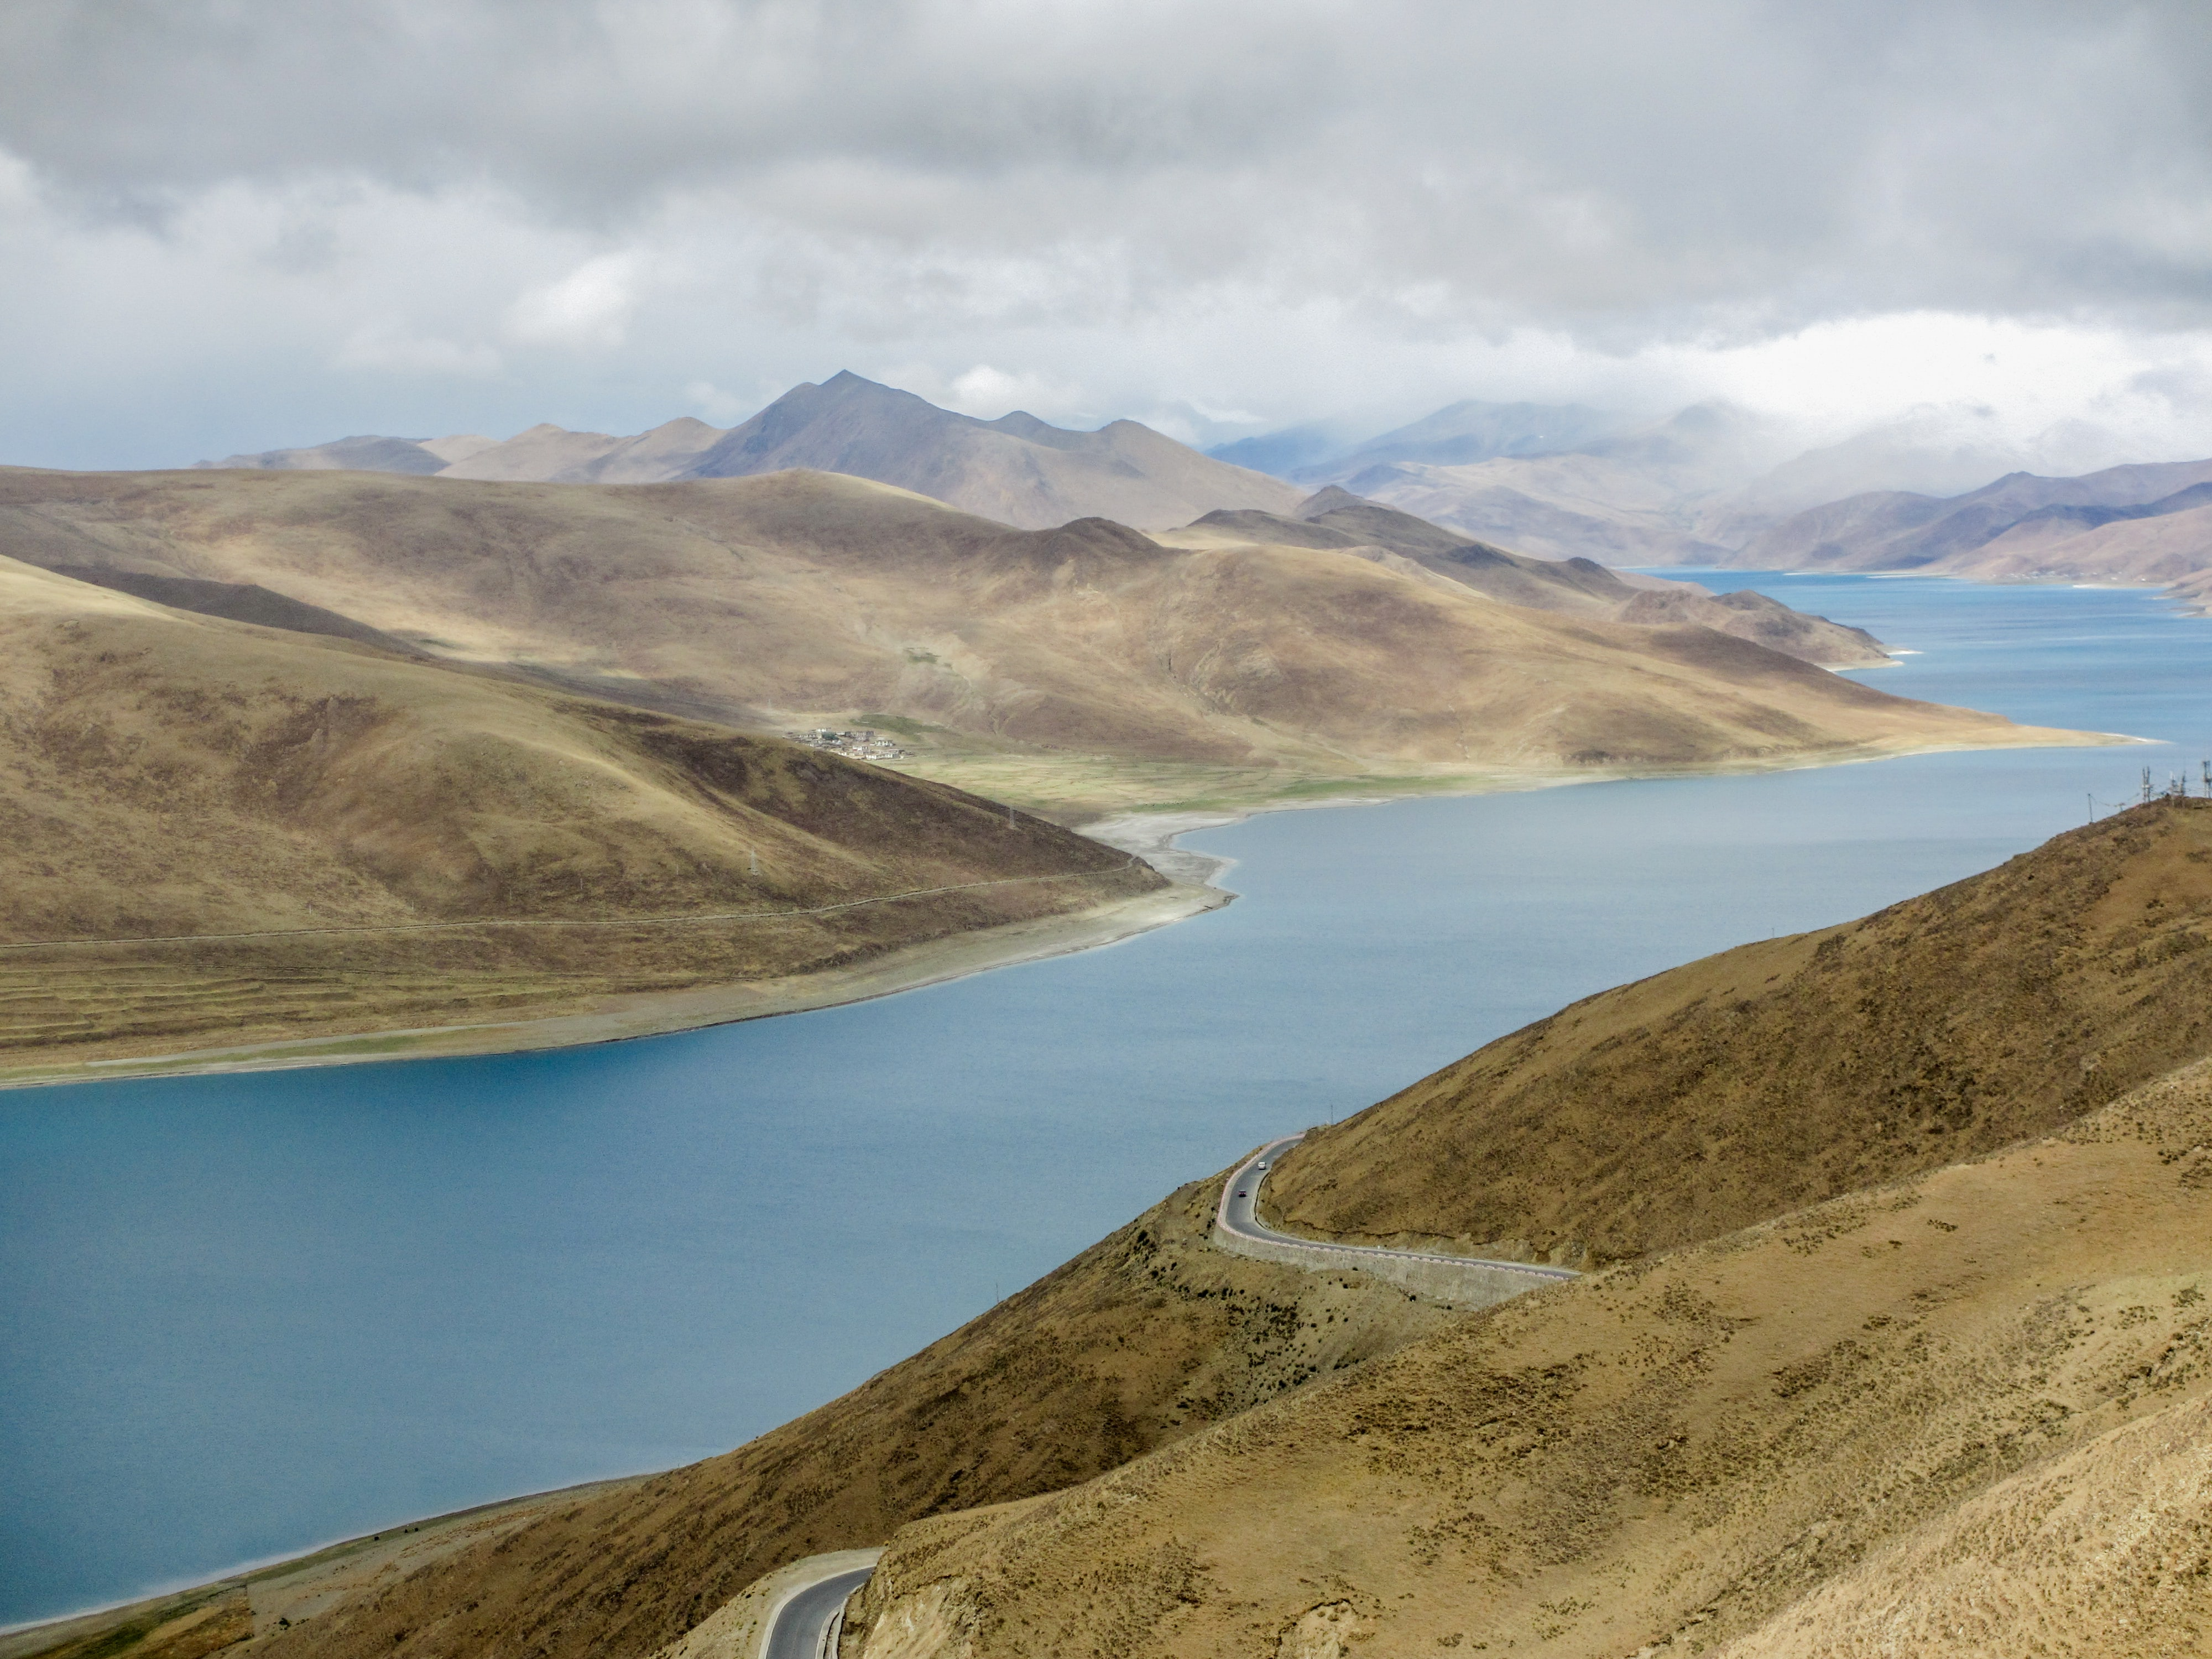 A river flowing between dry hilly banks in Tibet